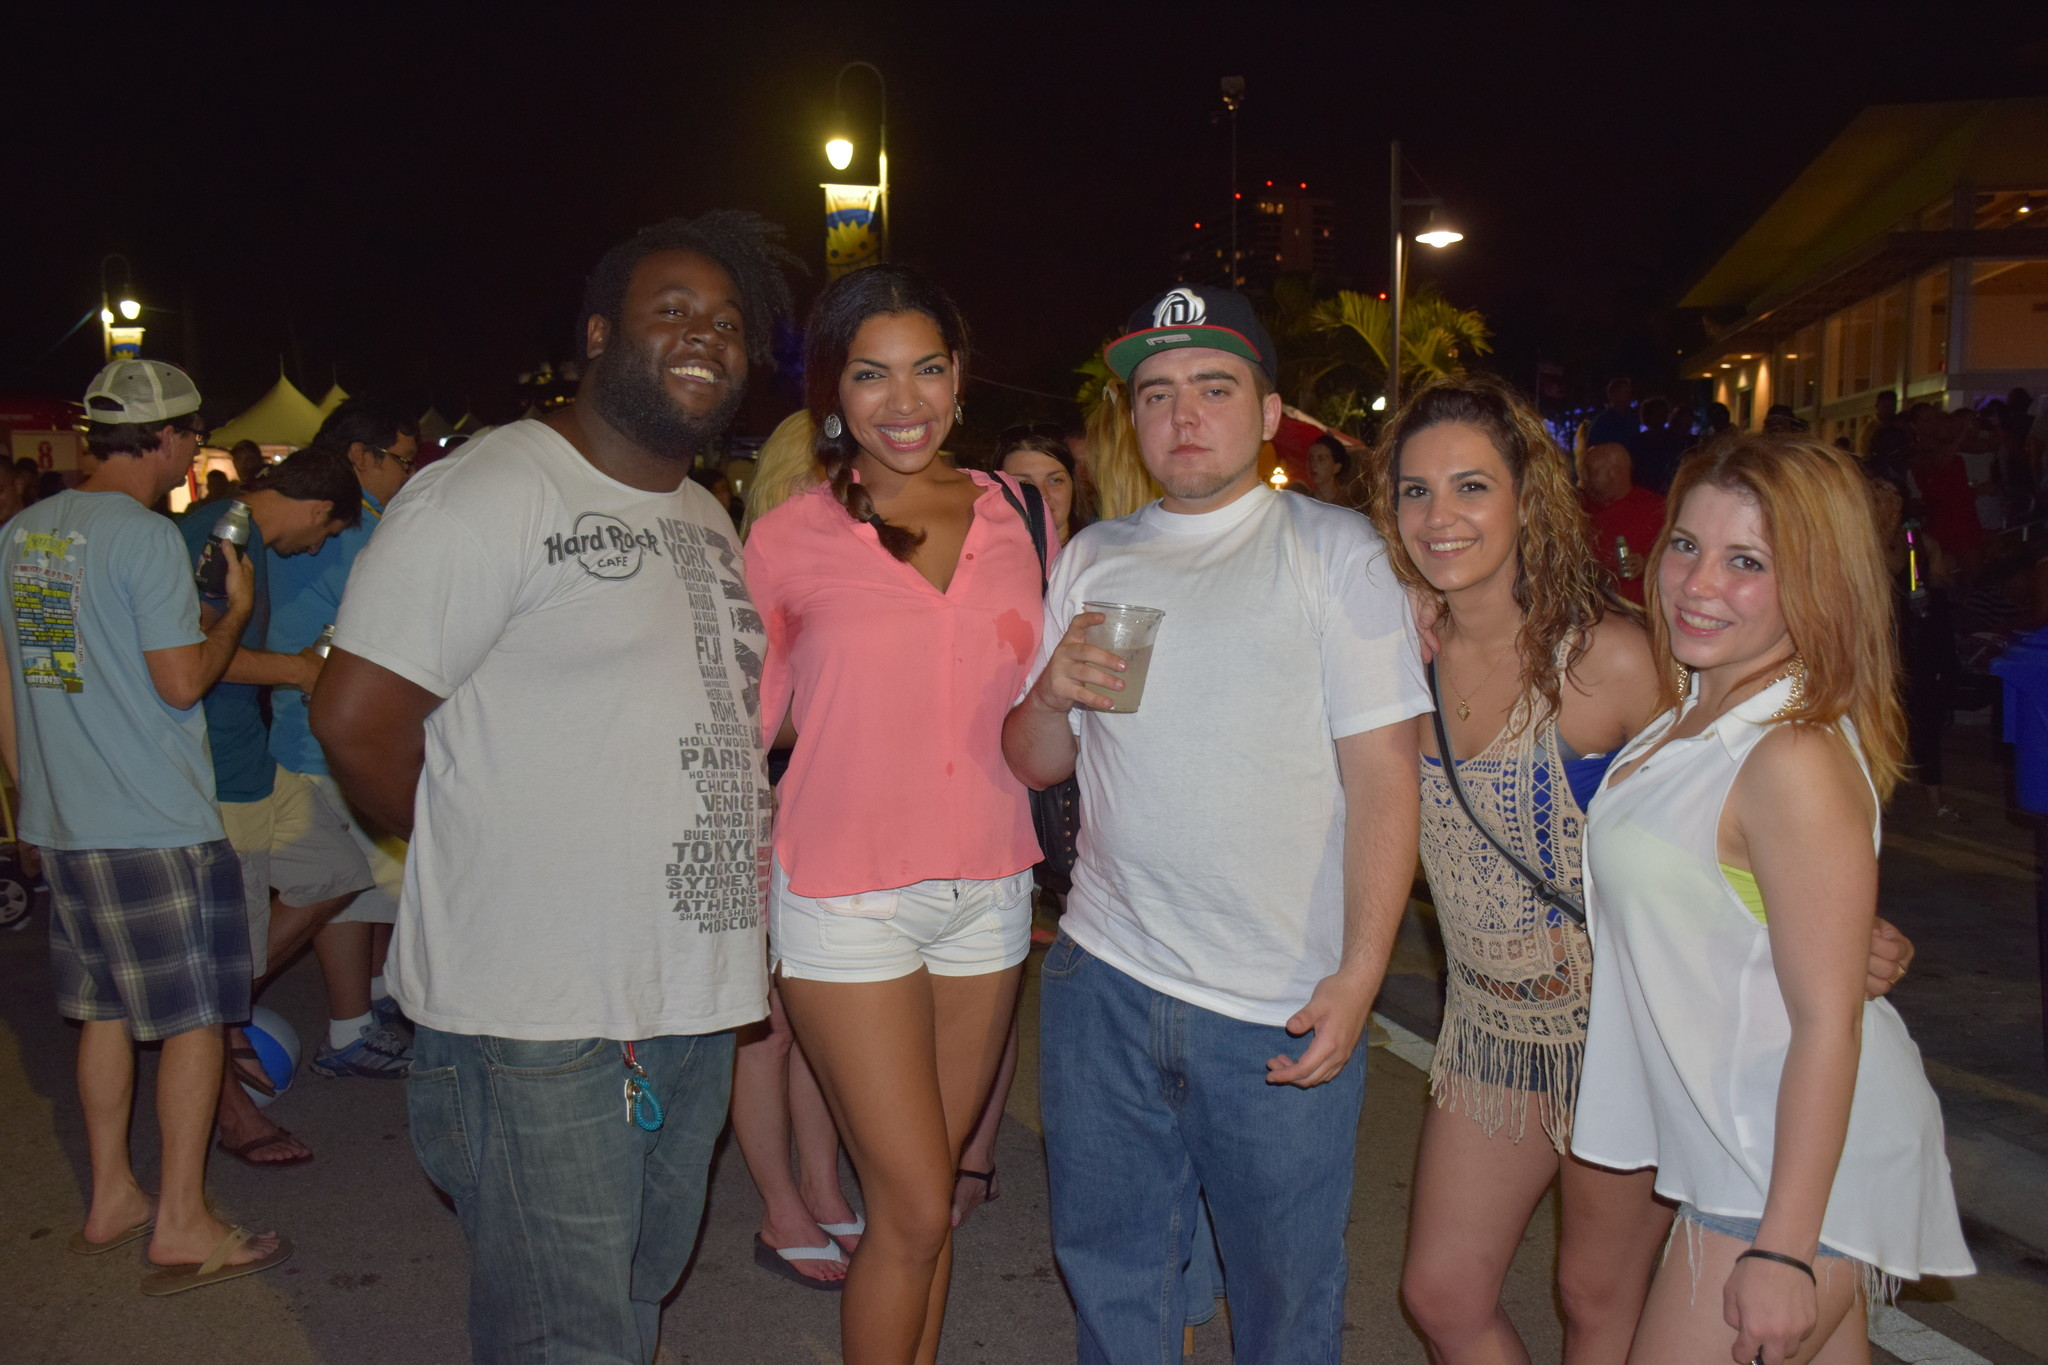 Pictures: SunFest in West Palm Beach - Sunfest Fun